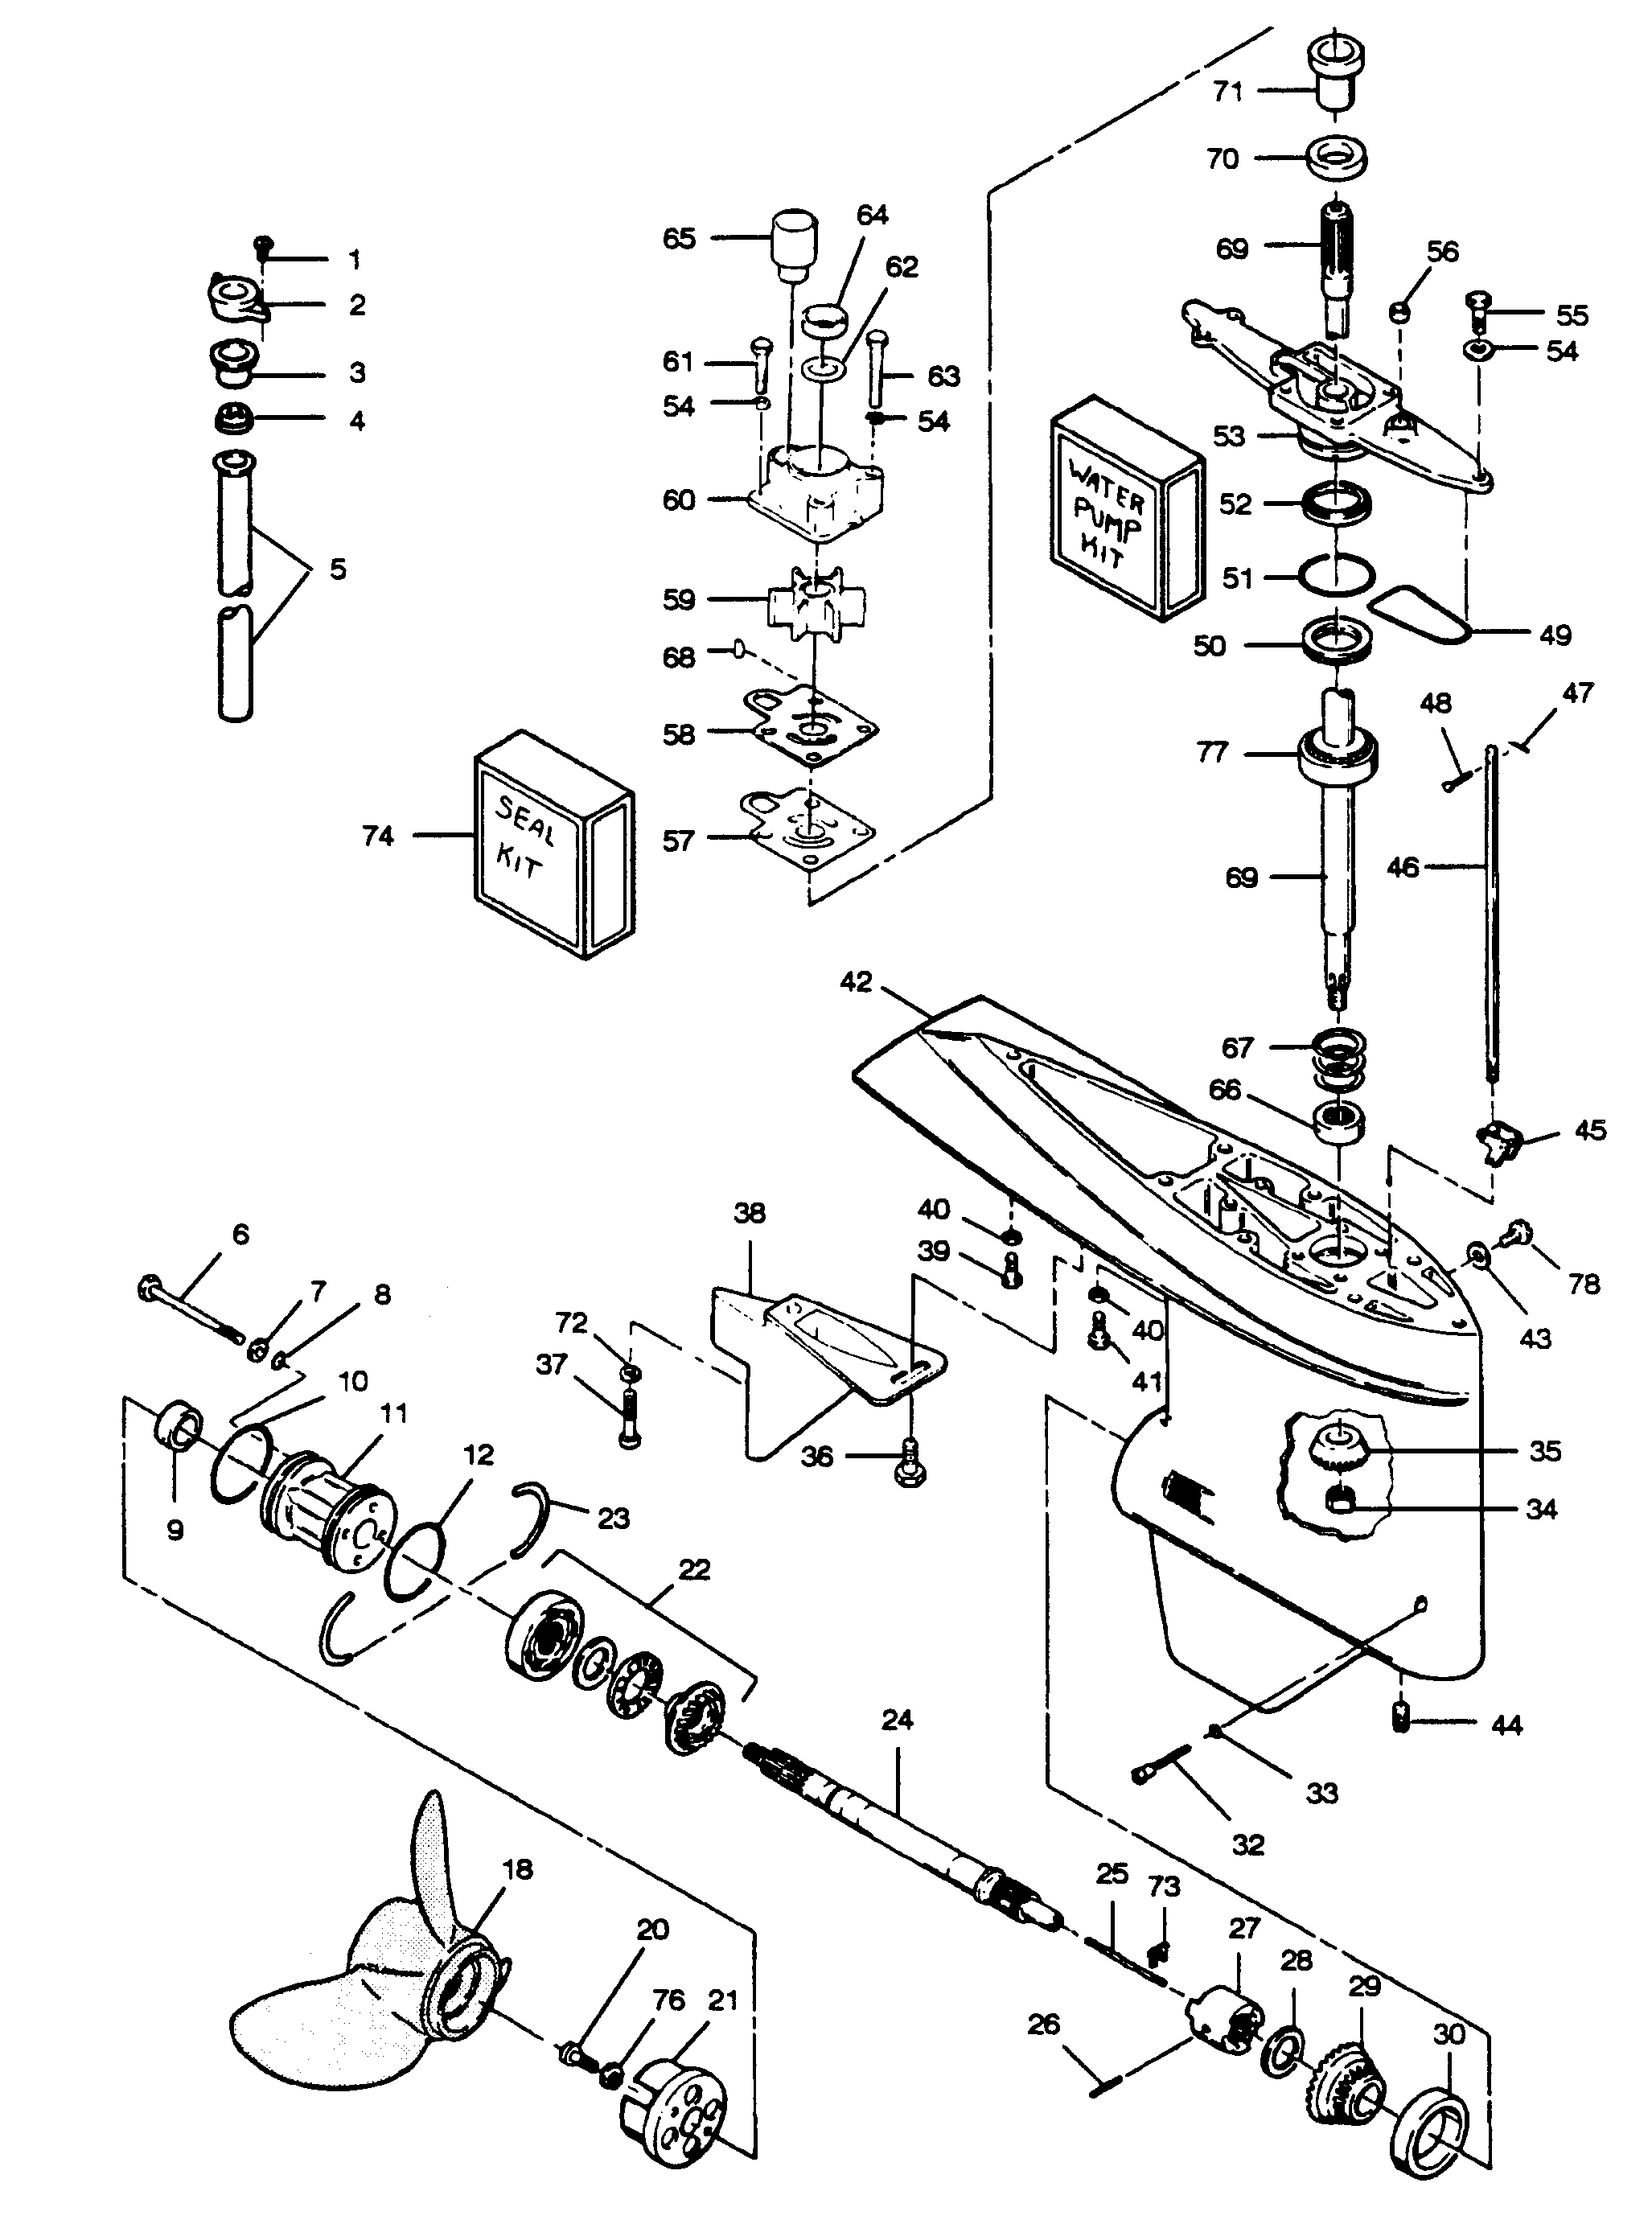 1992 l drive force from engine to prop diagram